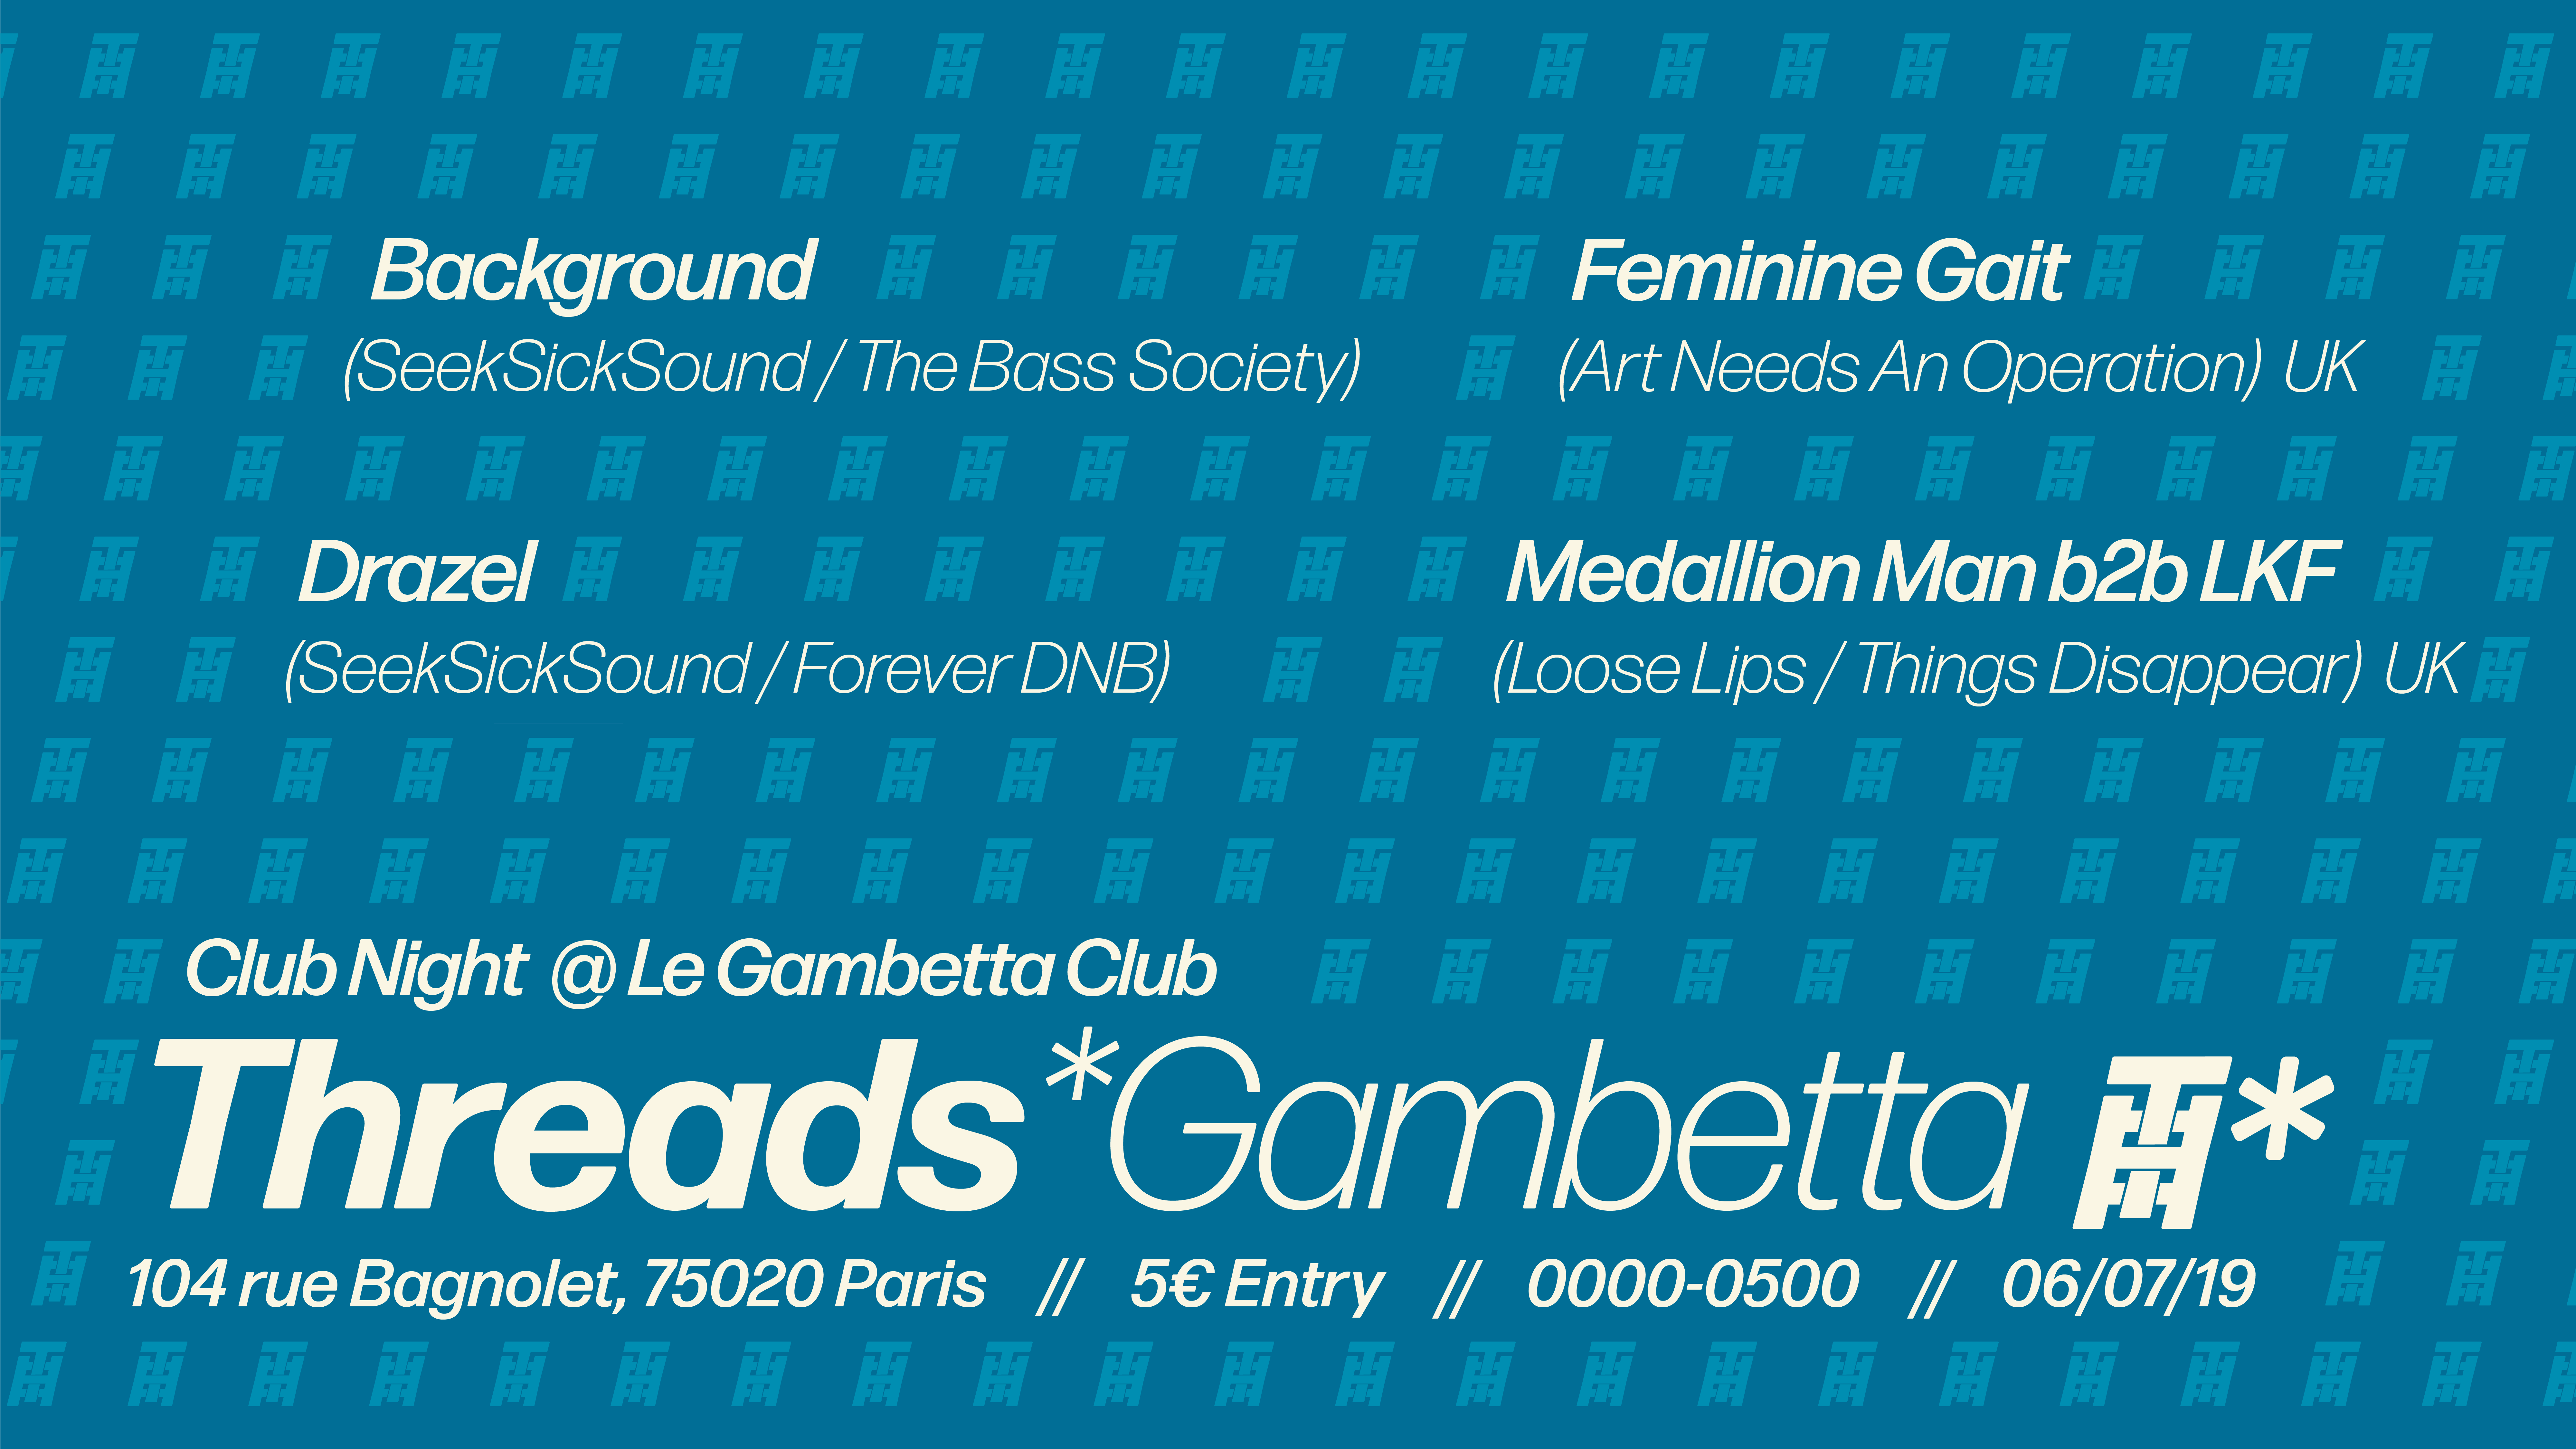 Threads*Gambetta Pop Up – Club Night in Paris (06/07/19)